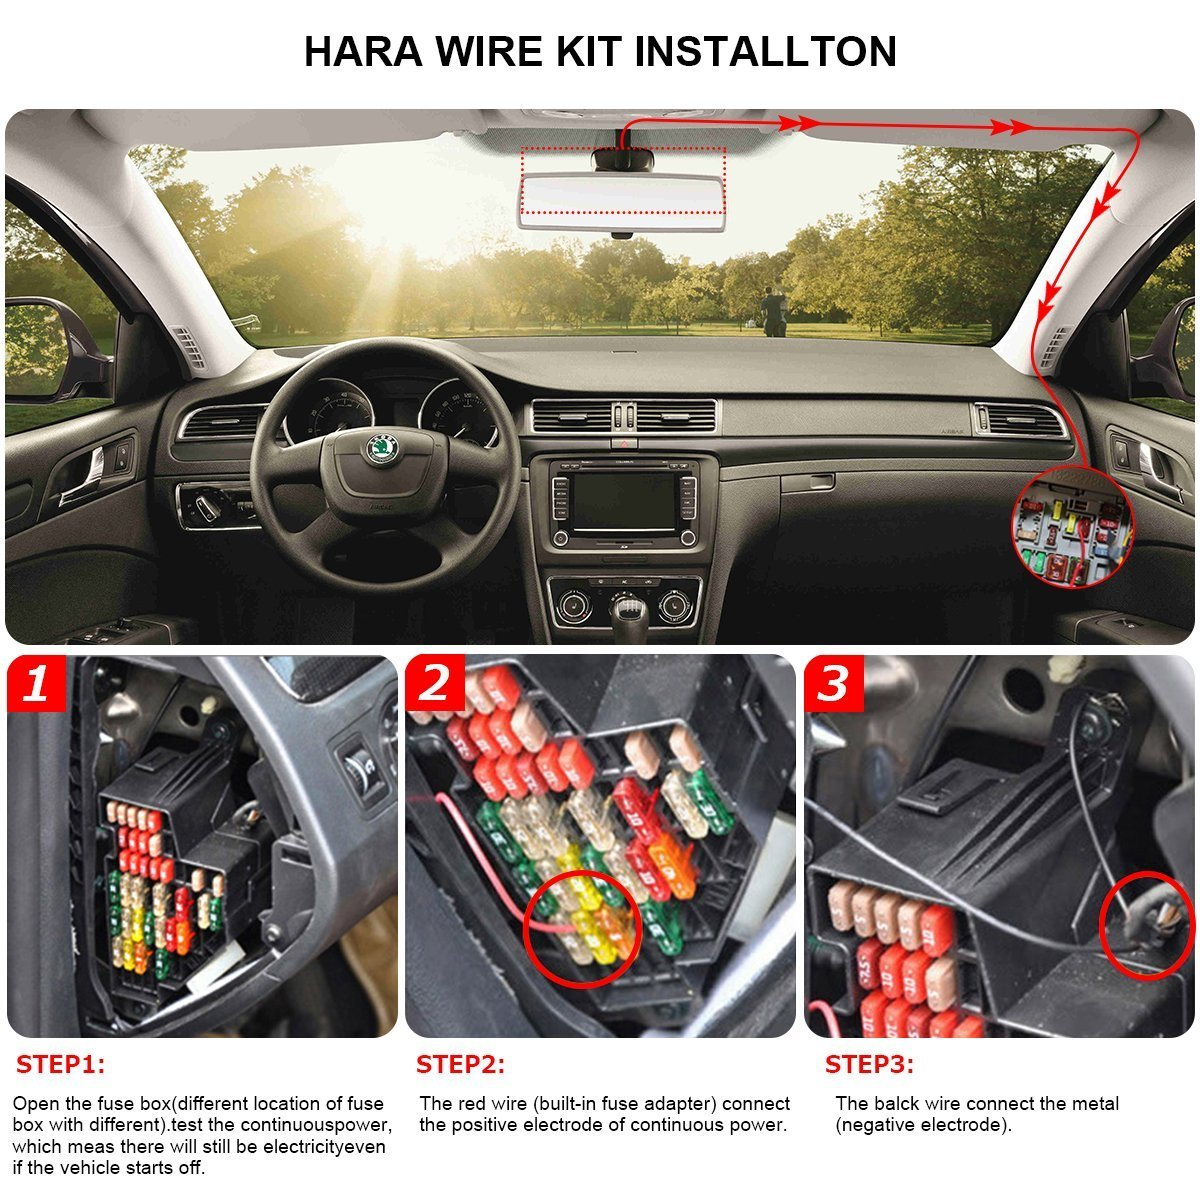 Dash Cam Hardwire Kitleft Angled Micro Usbdc 12 24v To 5v Car Fuse Box Test Charger Cable Kits115 Foot For Dashboard Camera Power Supply Gps